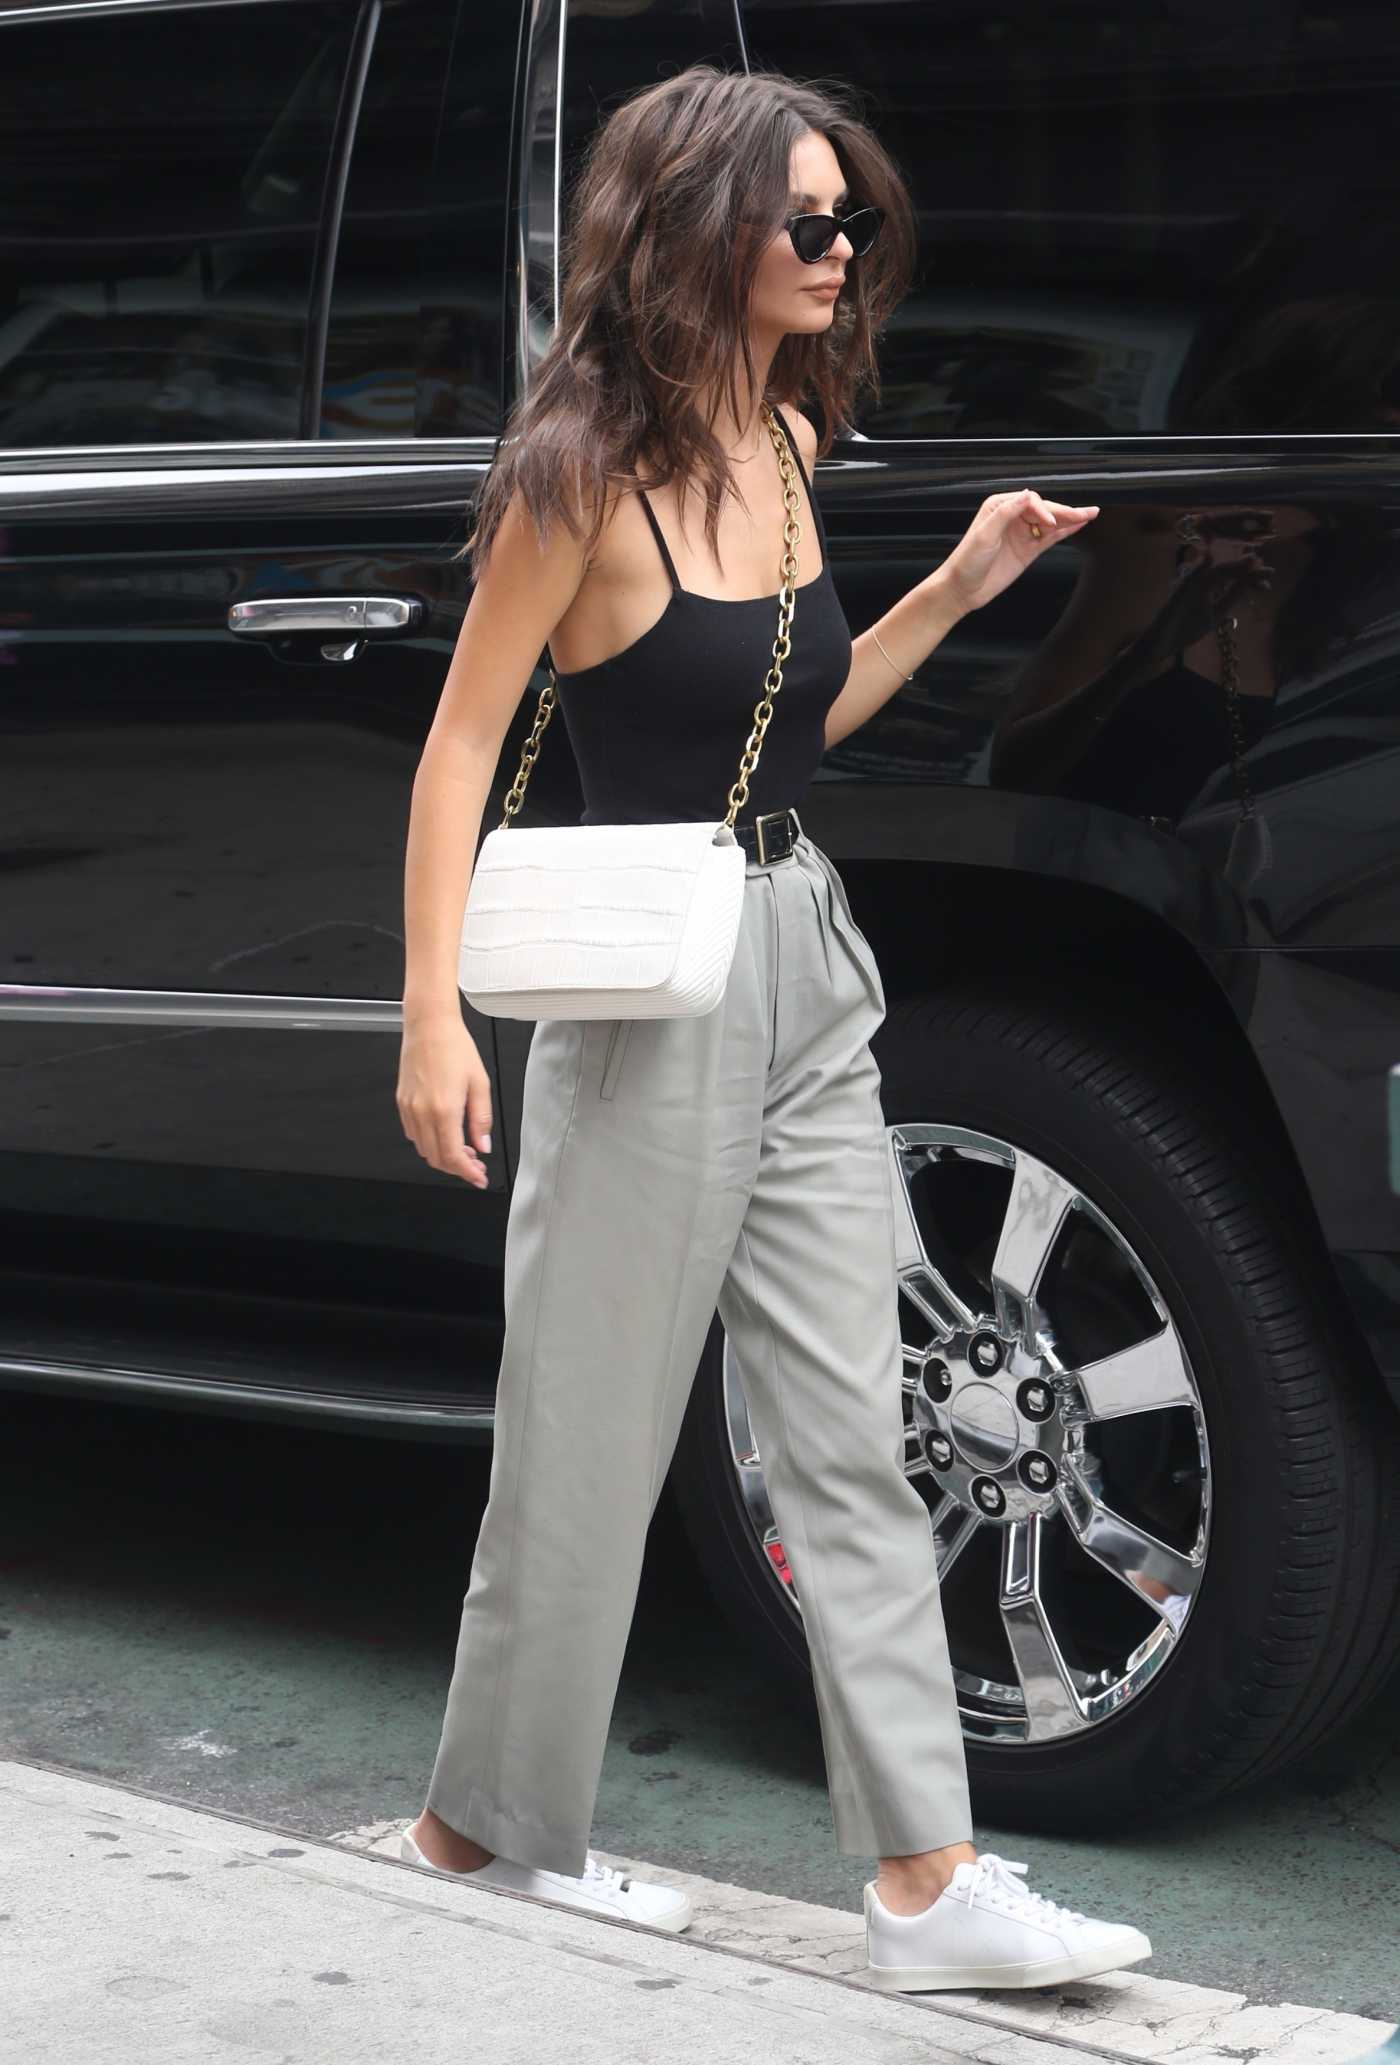 Emily Ratajkowski in a Black Top Was Seen Out in New York City 10/02/2019